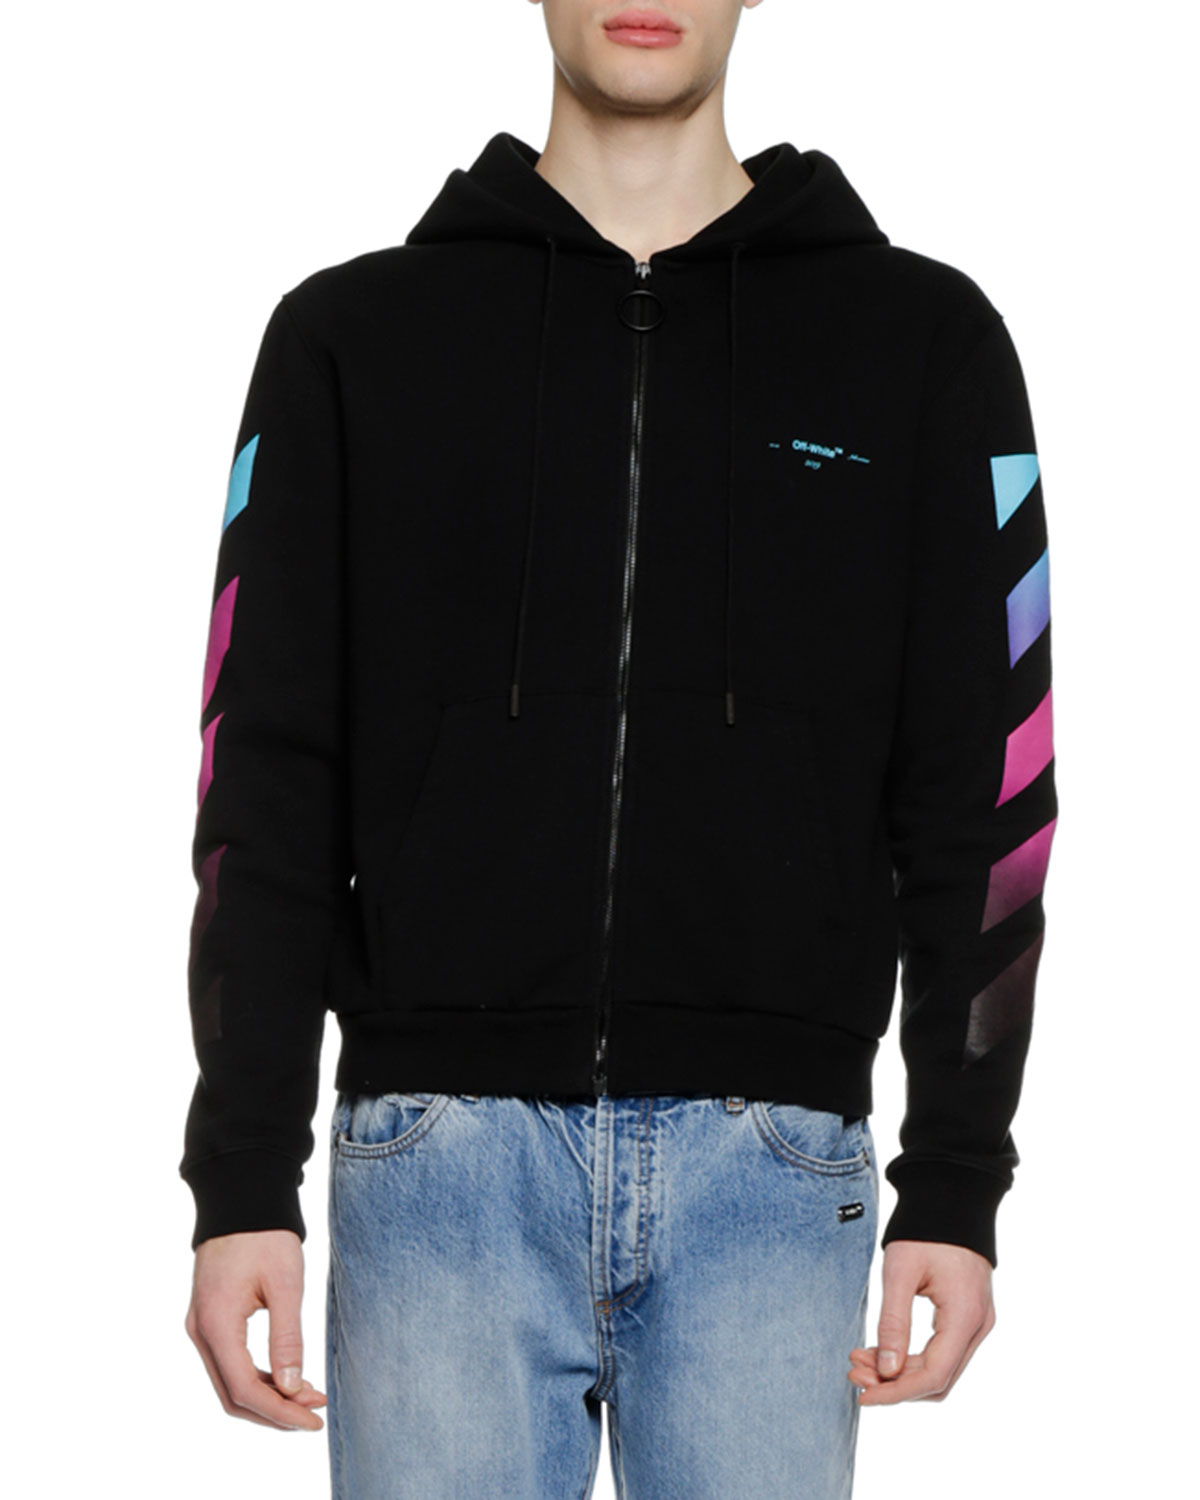 4f2c85171ef769 Off-White Men s Diagonal Gradient Zip-Front Hoodie Sweatshirt ...